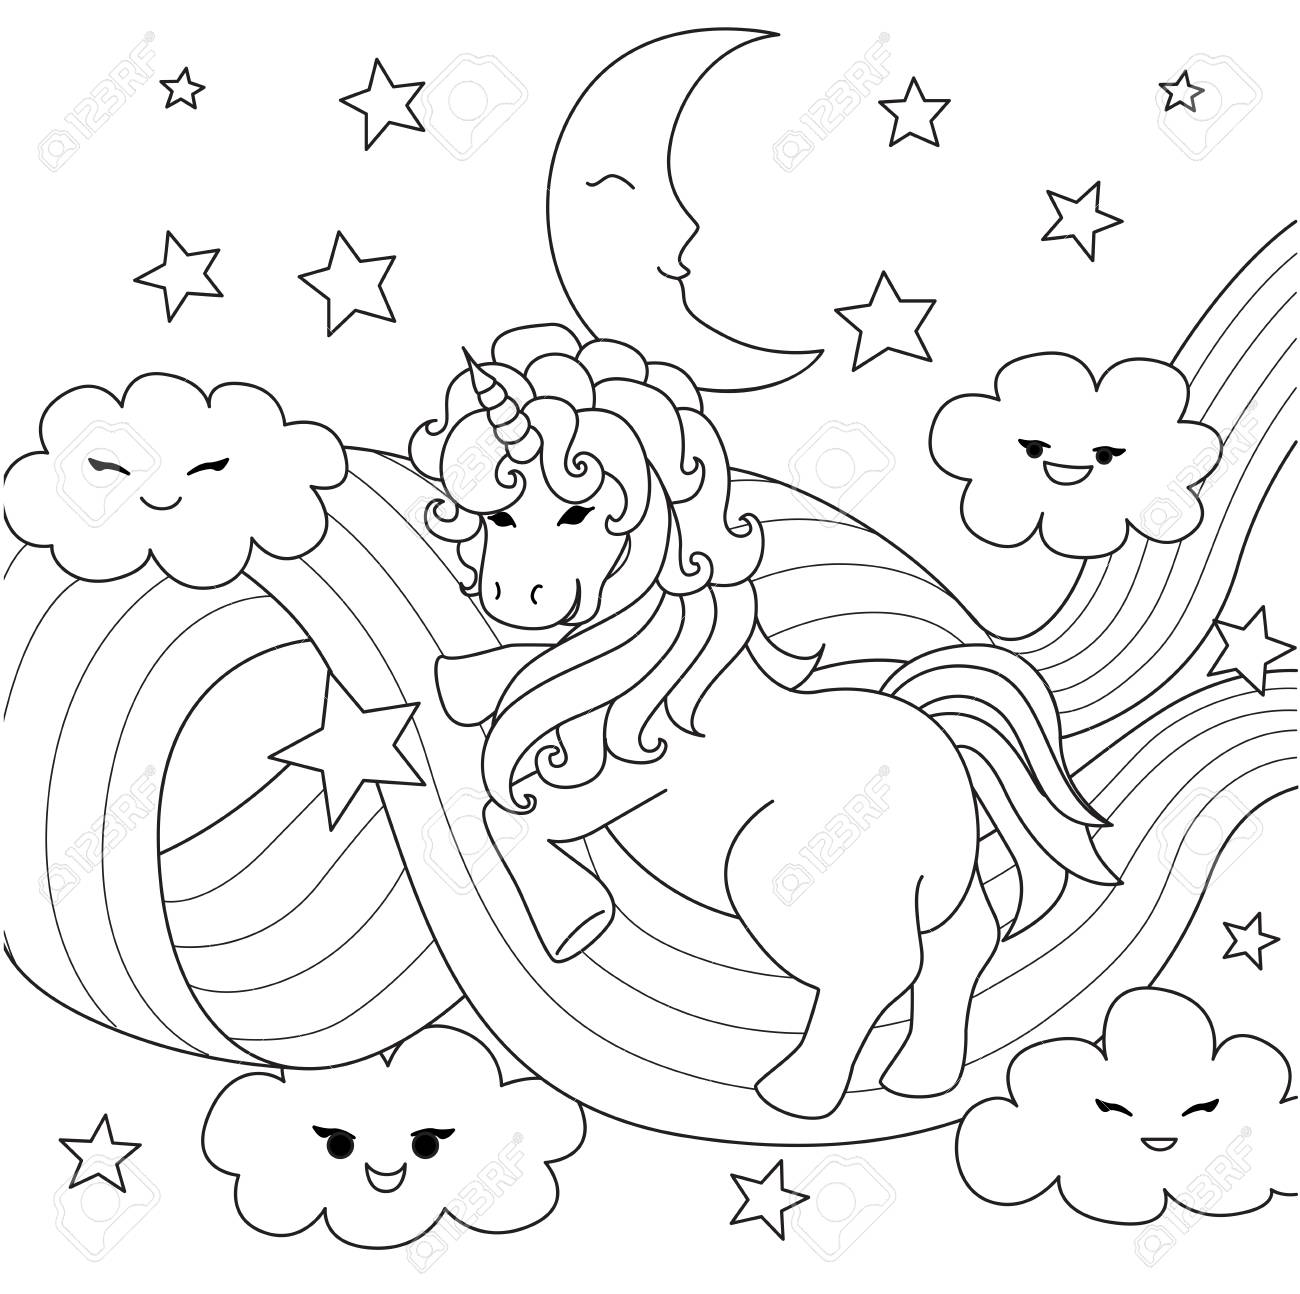 Unicorn Playing With Rainbow Path For Design Element And Coloring Royalty Free Cliparts Vectors And Stock Illustration Image 104096840